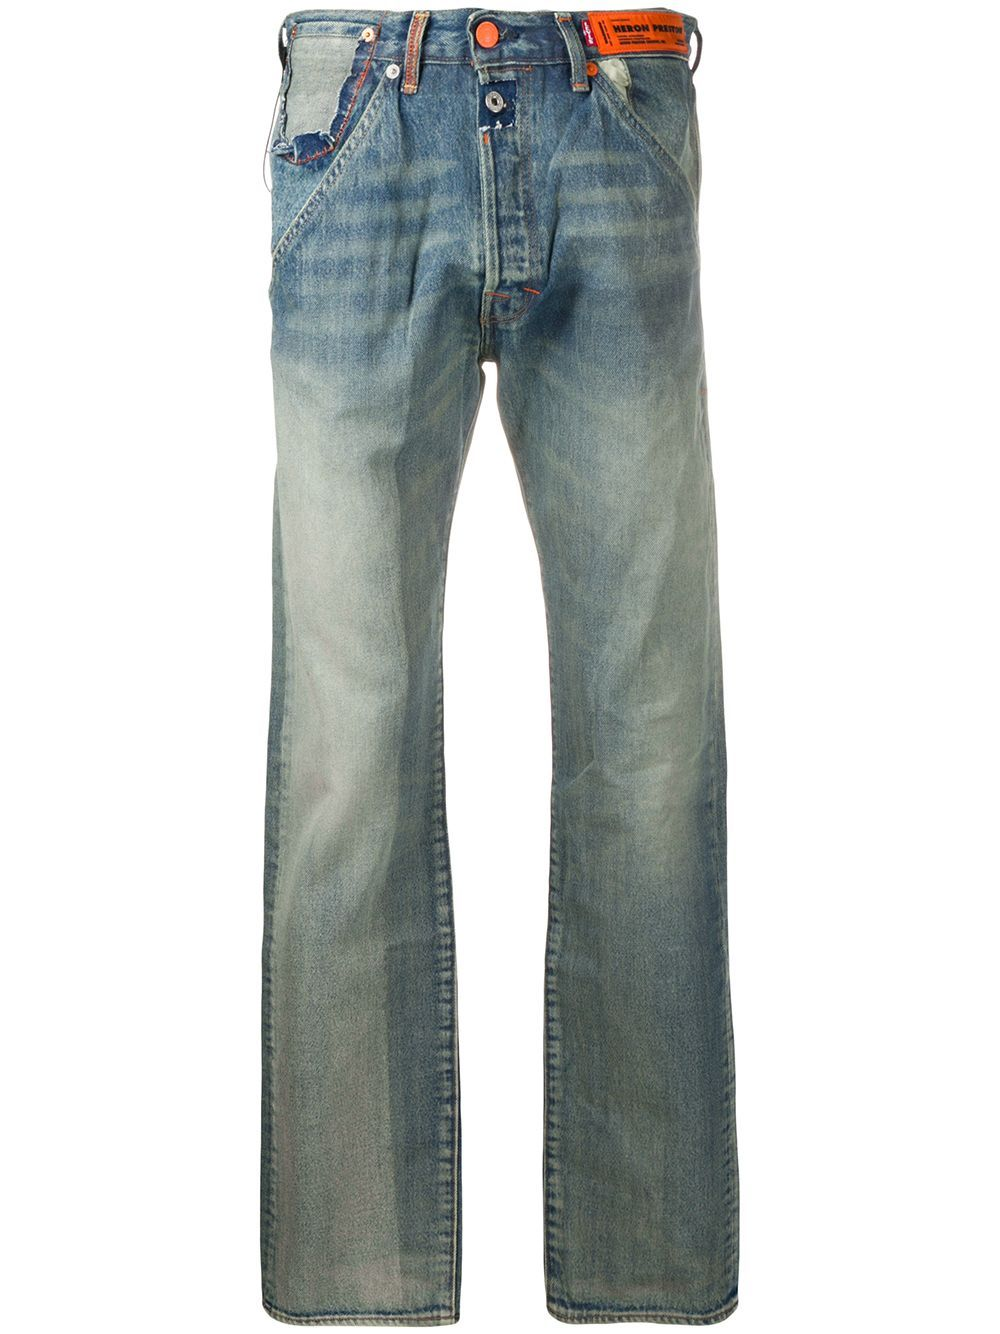 HERON PRESTON Levi's 501 Vintage Wash Jeans - Maison De Fashion